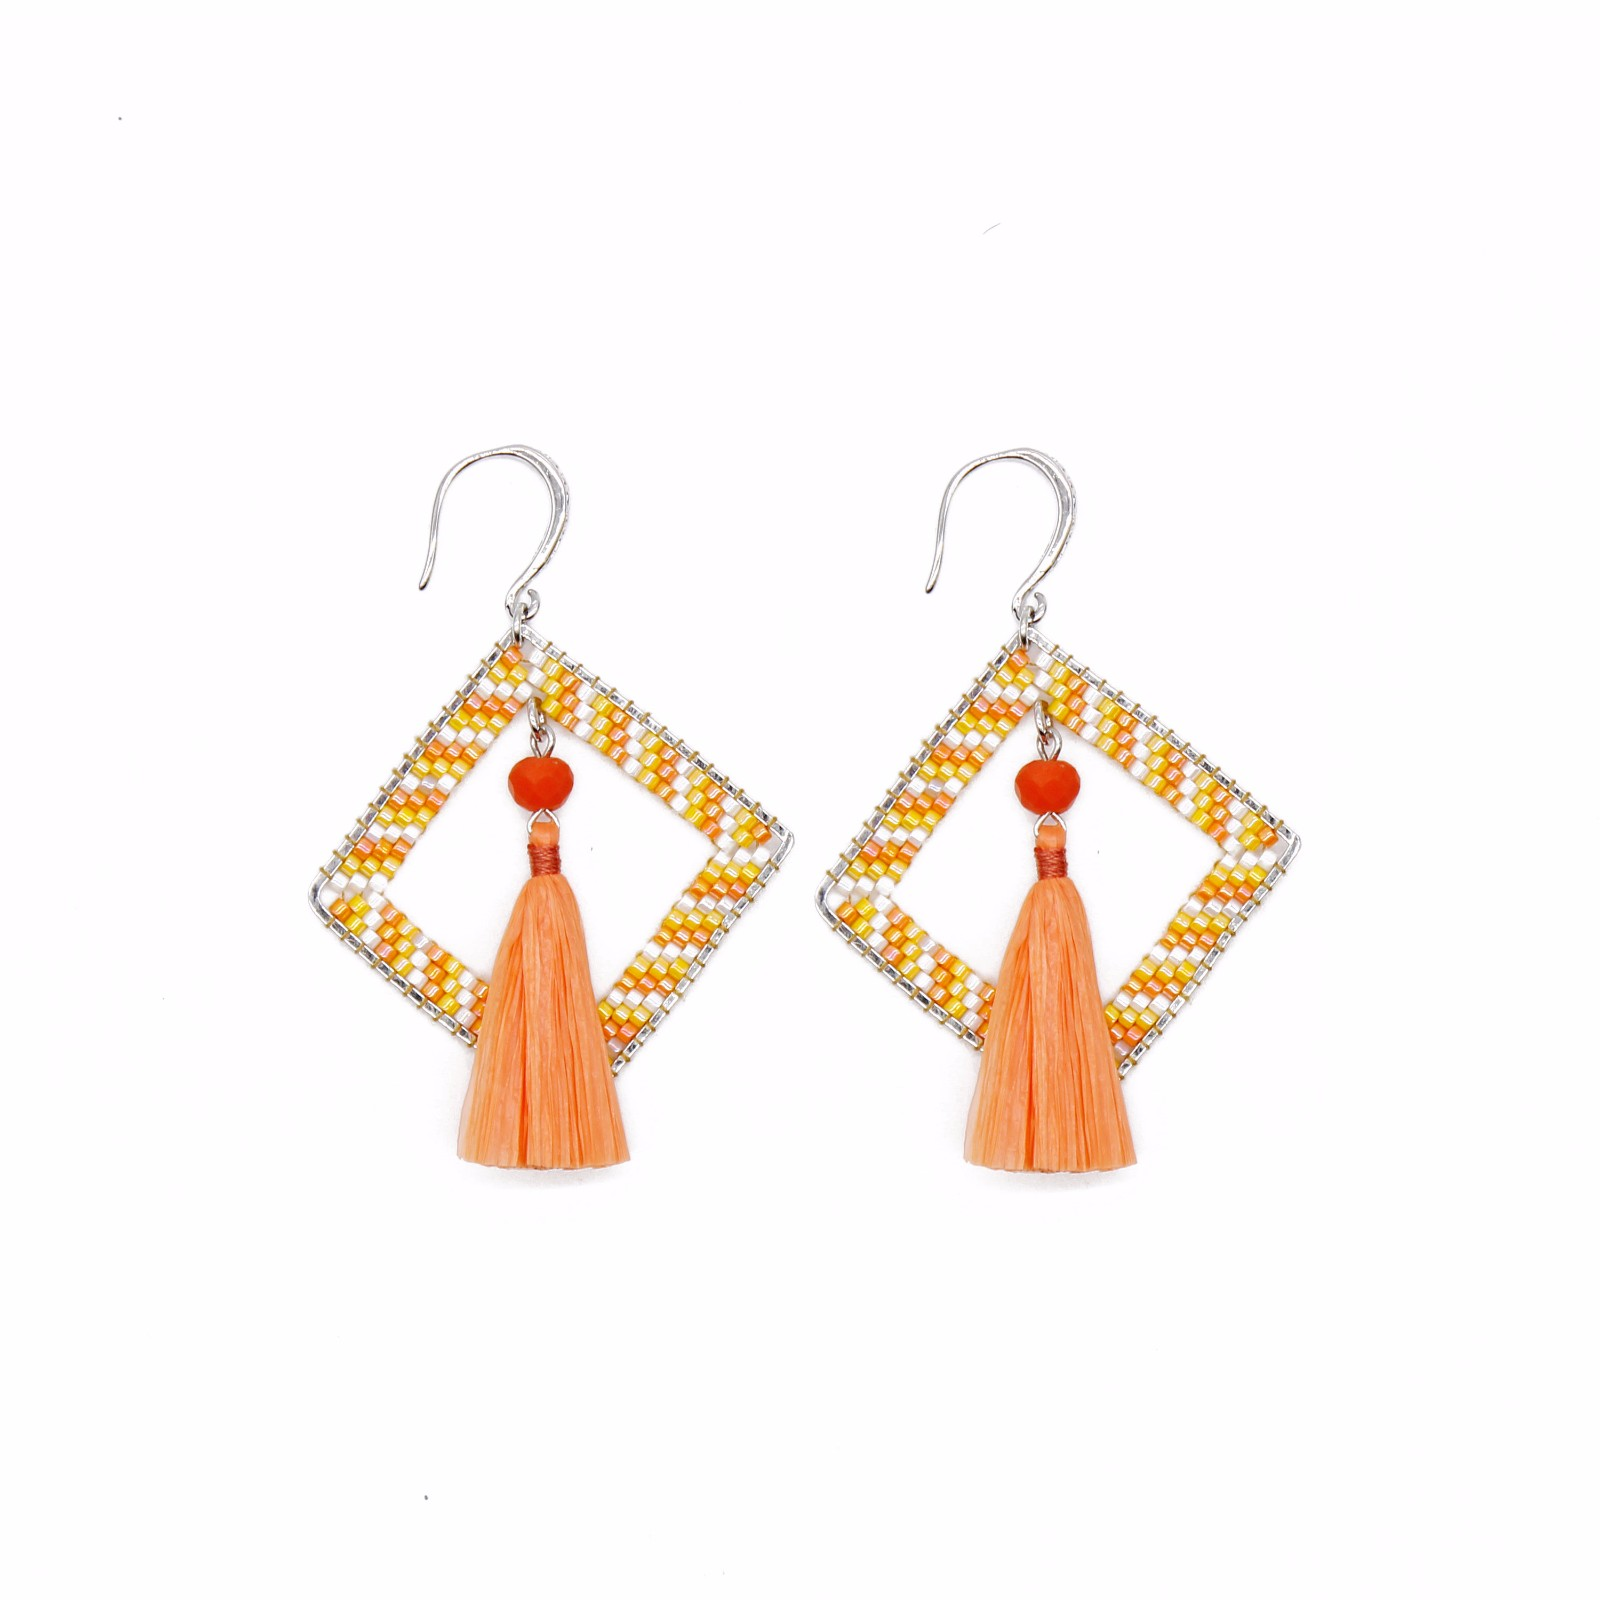 jewelry supplier Orange Style Raffia Statement Earrings with Miyuki Beads